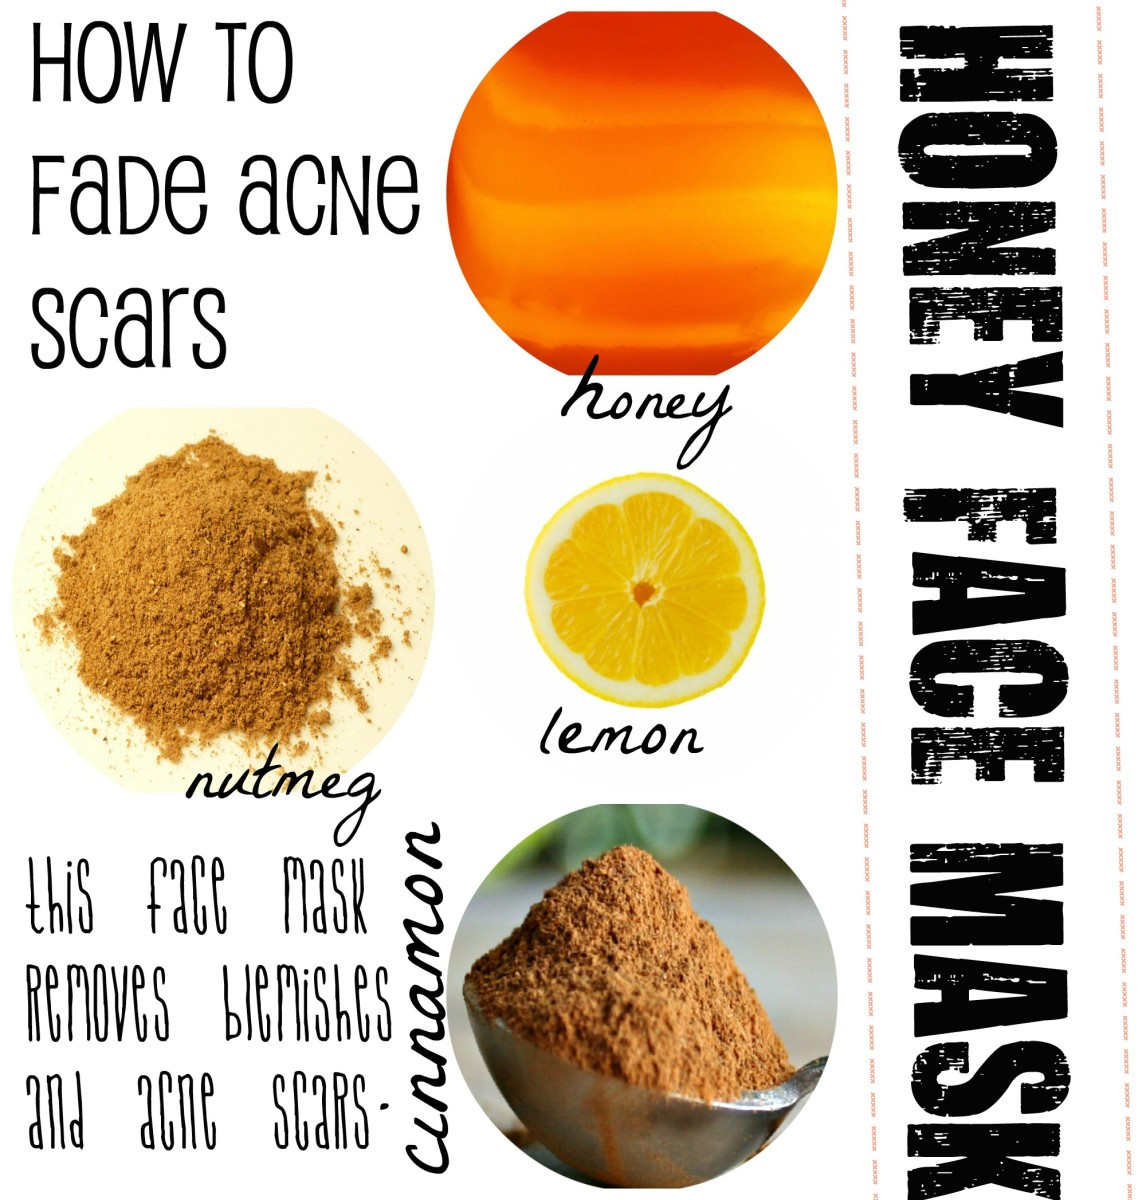 DIY Face Mask For Acne Scars  Homemade Honey Face Mask Recipes for Beautiful Skin